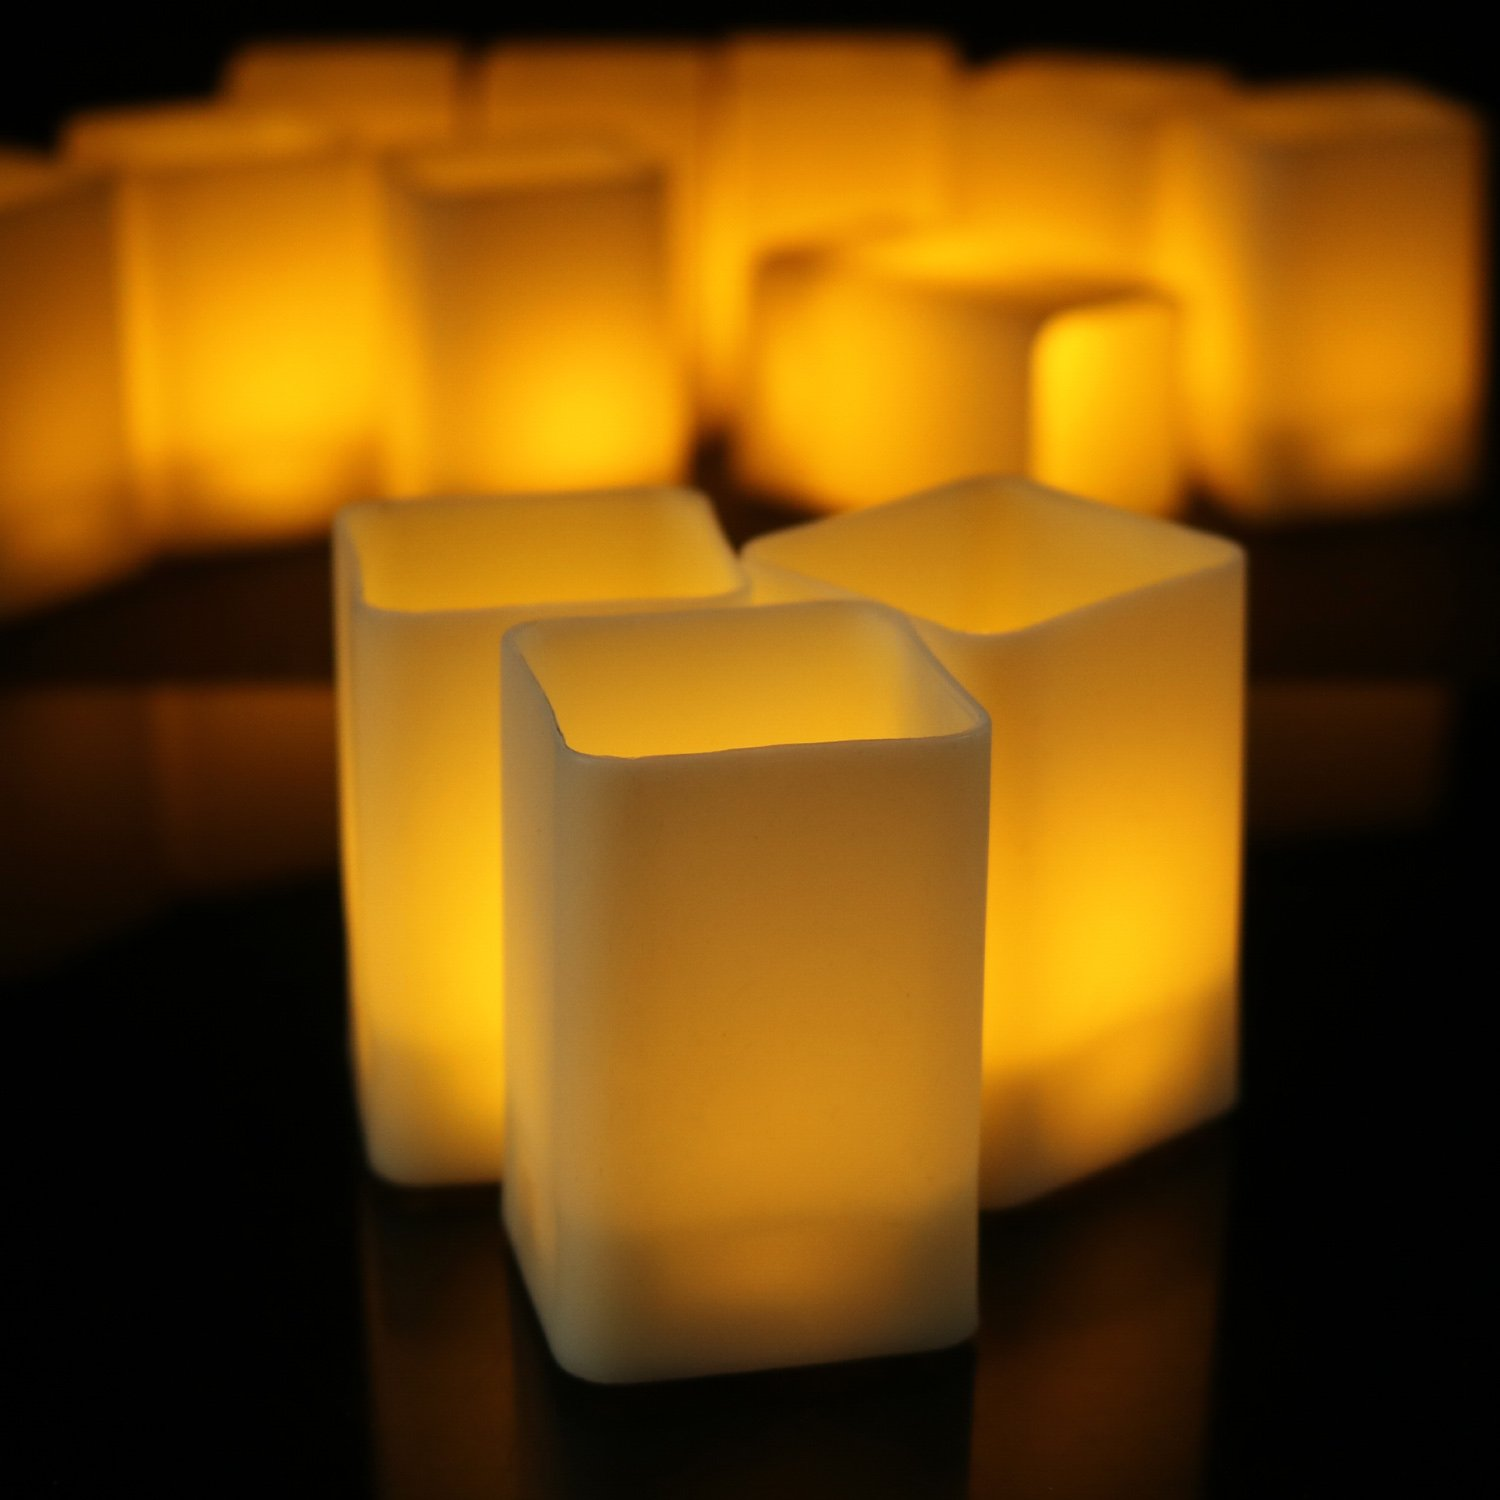 Horeset 12pcs Square Flameless Candle Warm White Plastic Flickering LED Tea Lights Faux Battery Operated Electric Lights, Fake LED Candle for Home Decor, Weddings, Birthday, Home Party Gifts